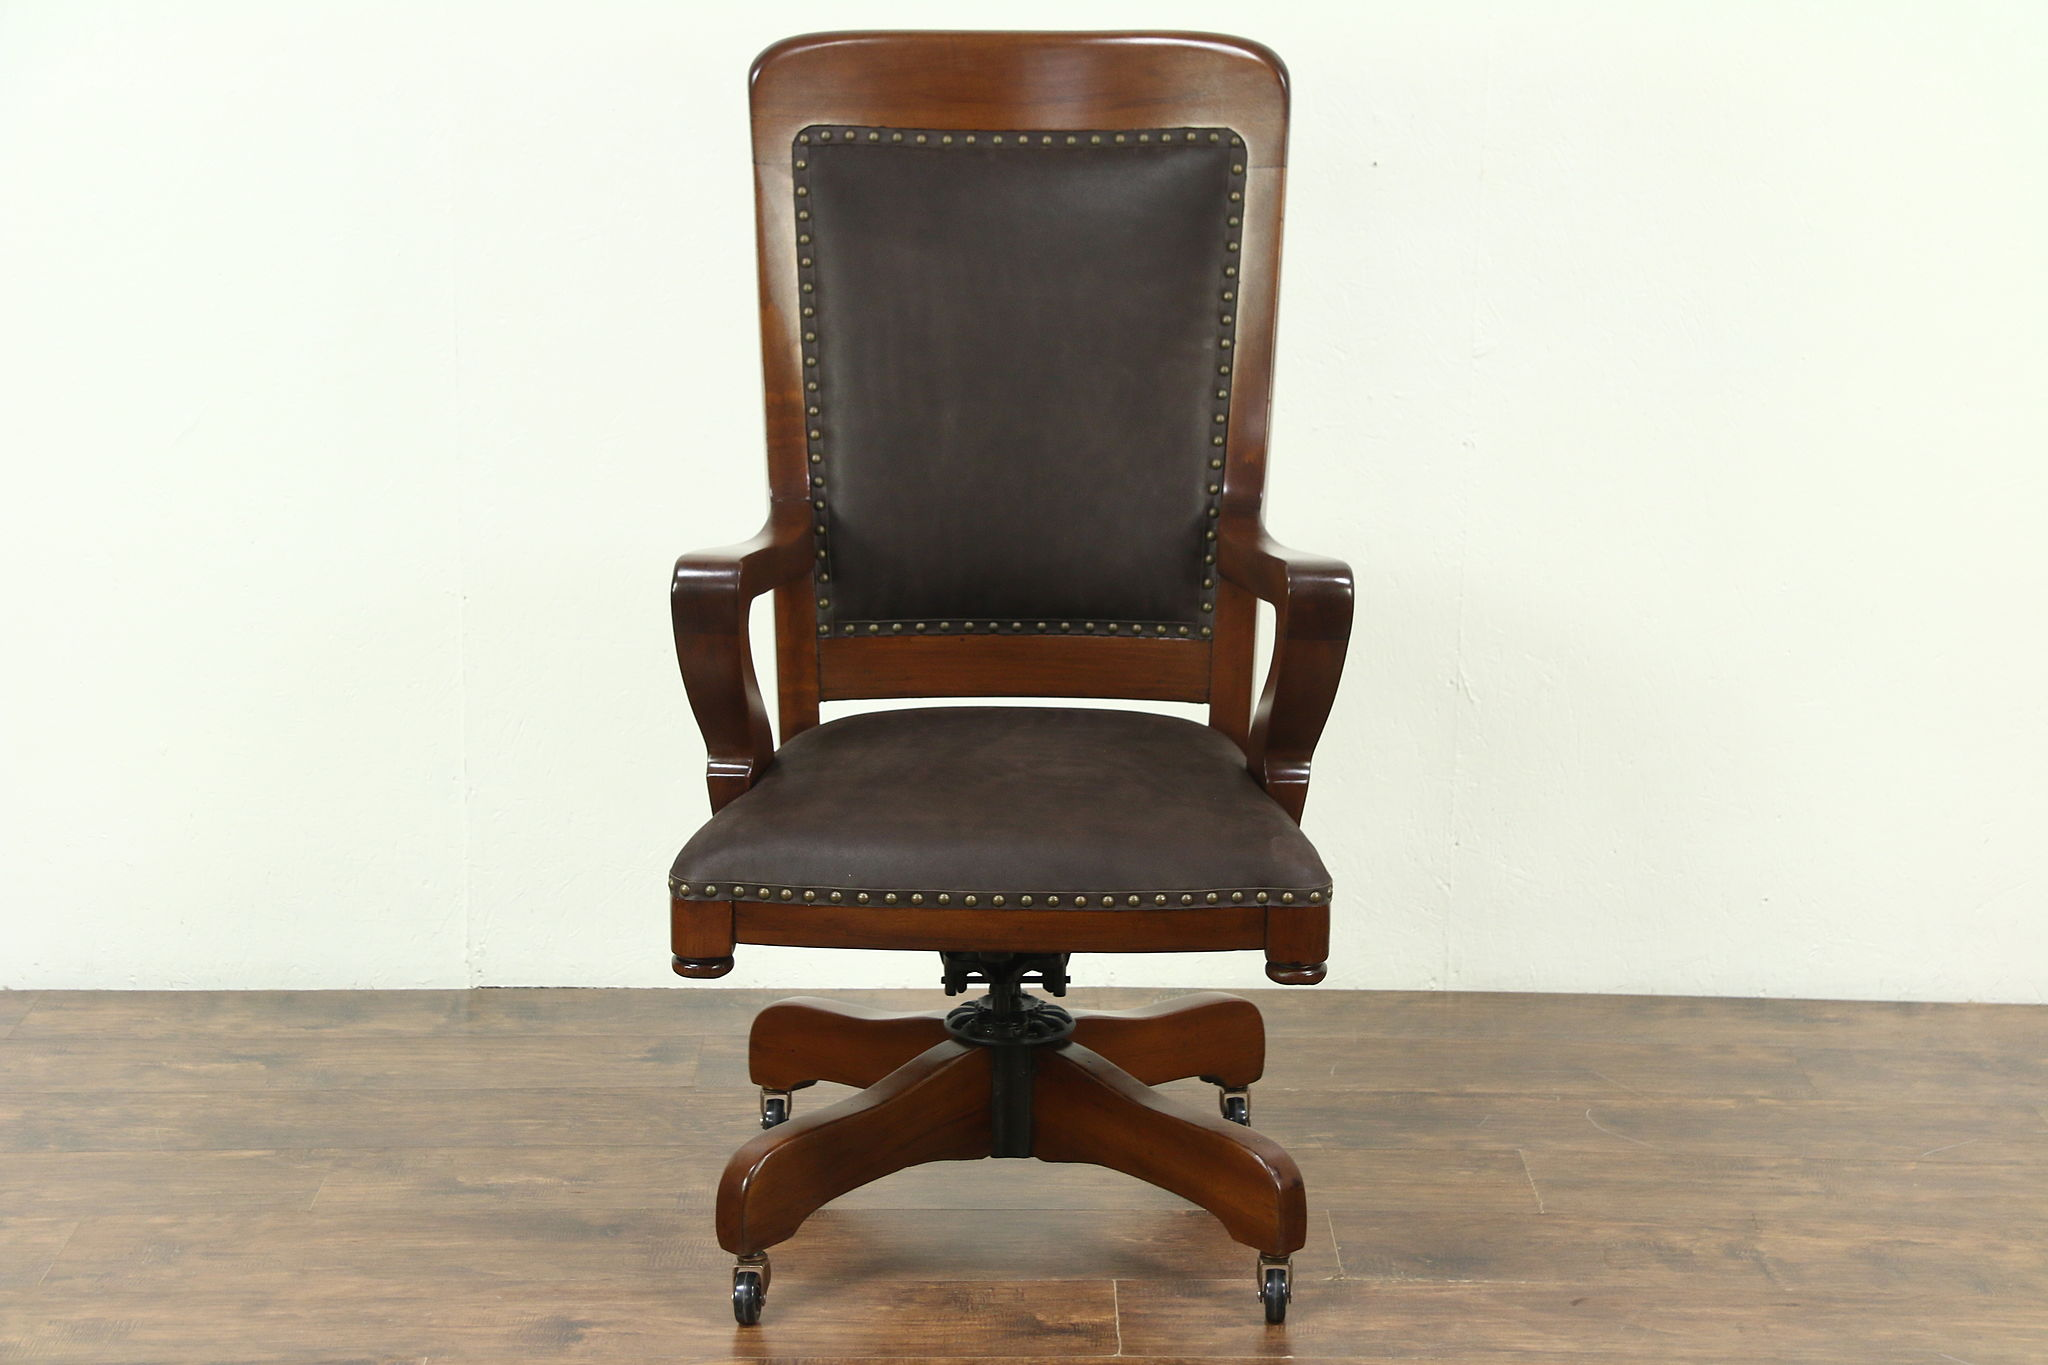 Swivel Adjustable 1915 Antique Desk Chair New Leather Upholstery